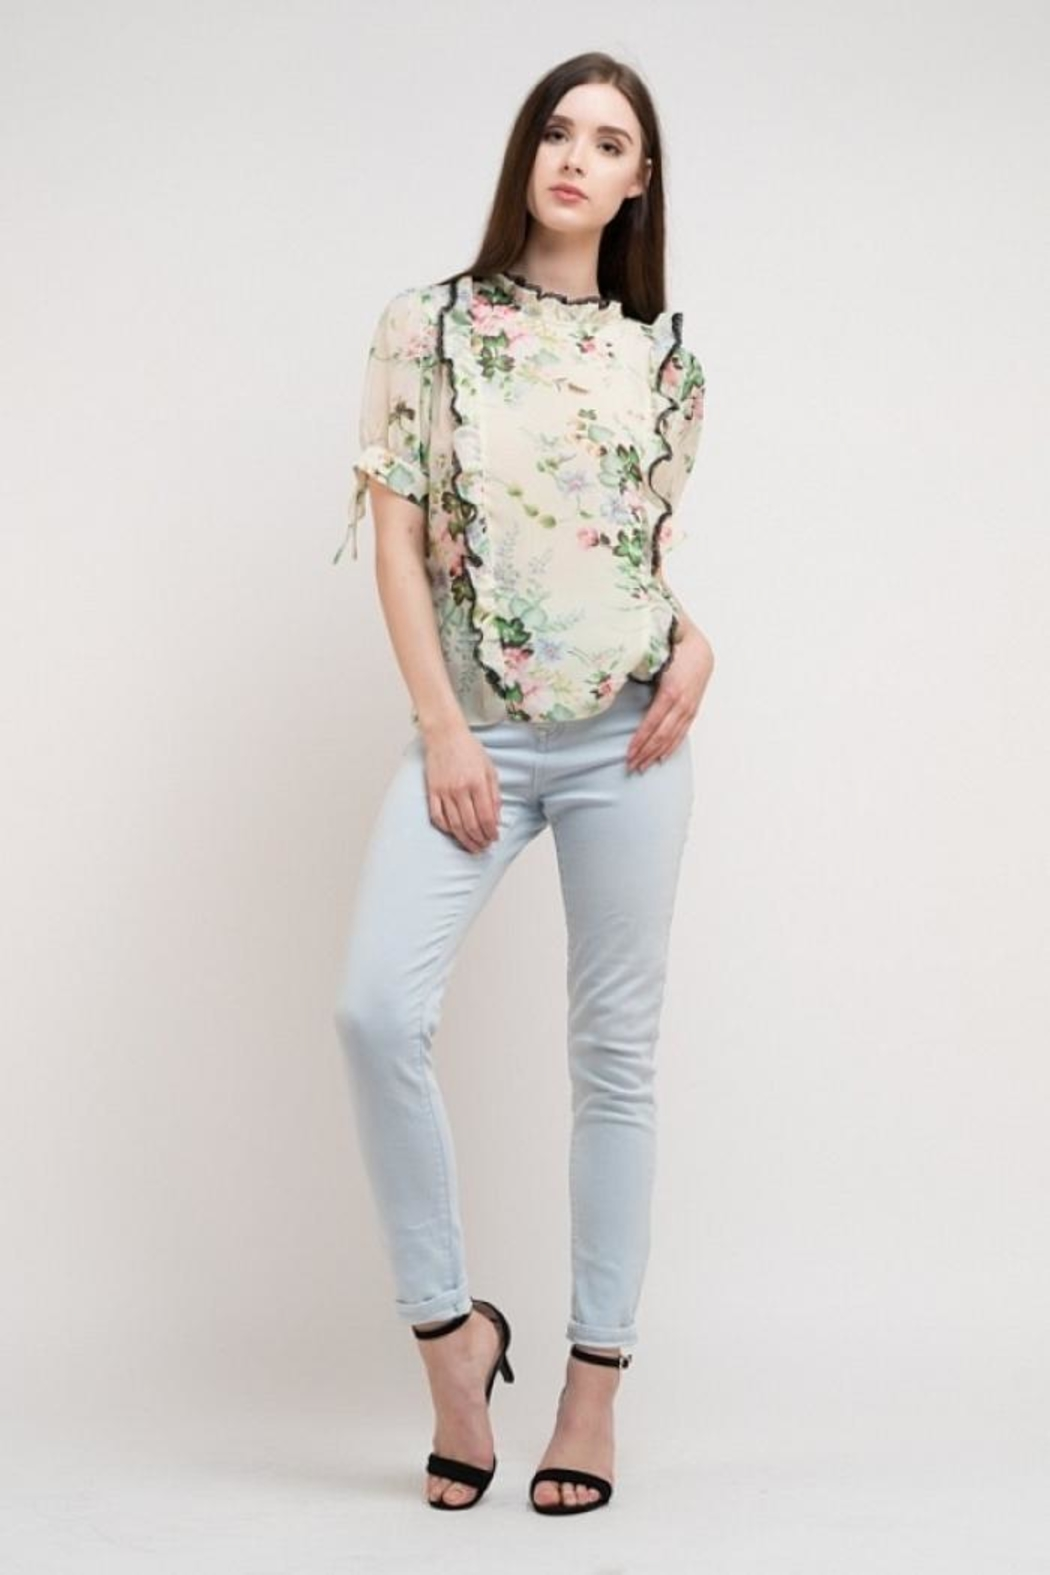 Elegance by Sarah Ruhs Floral Chiffon Top - Main Image